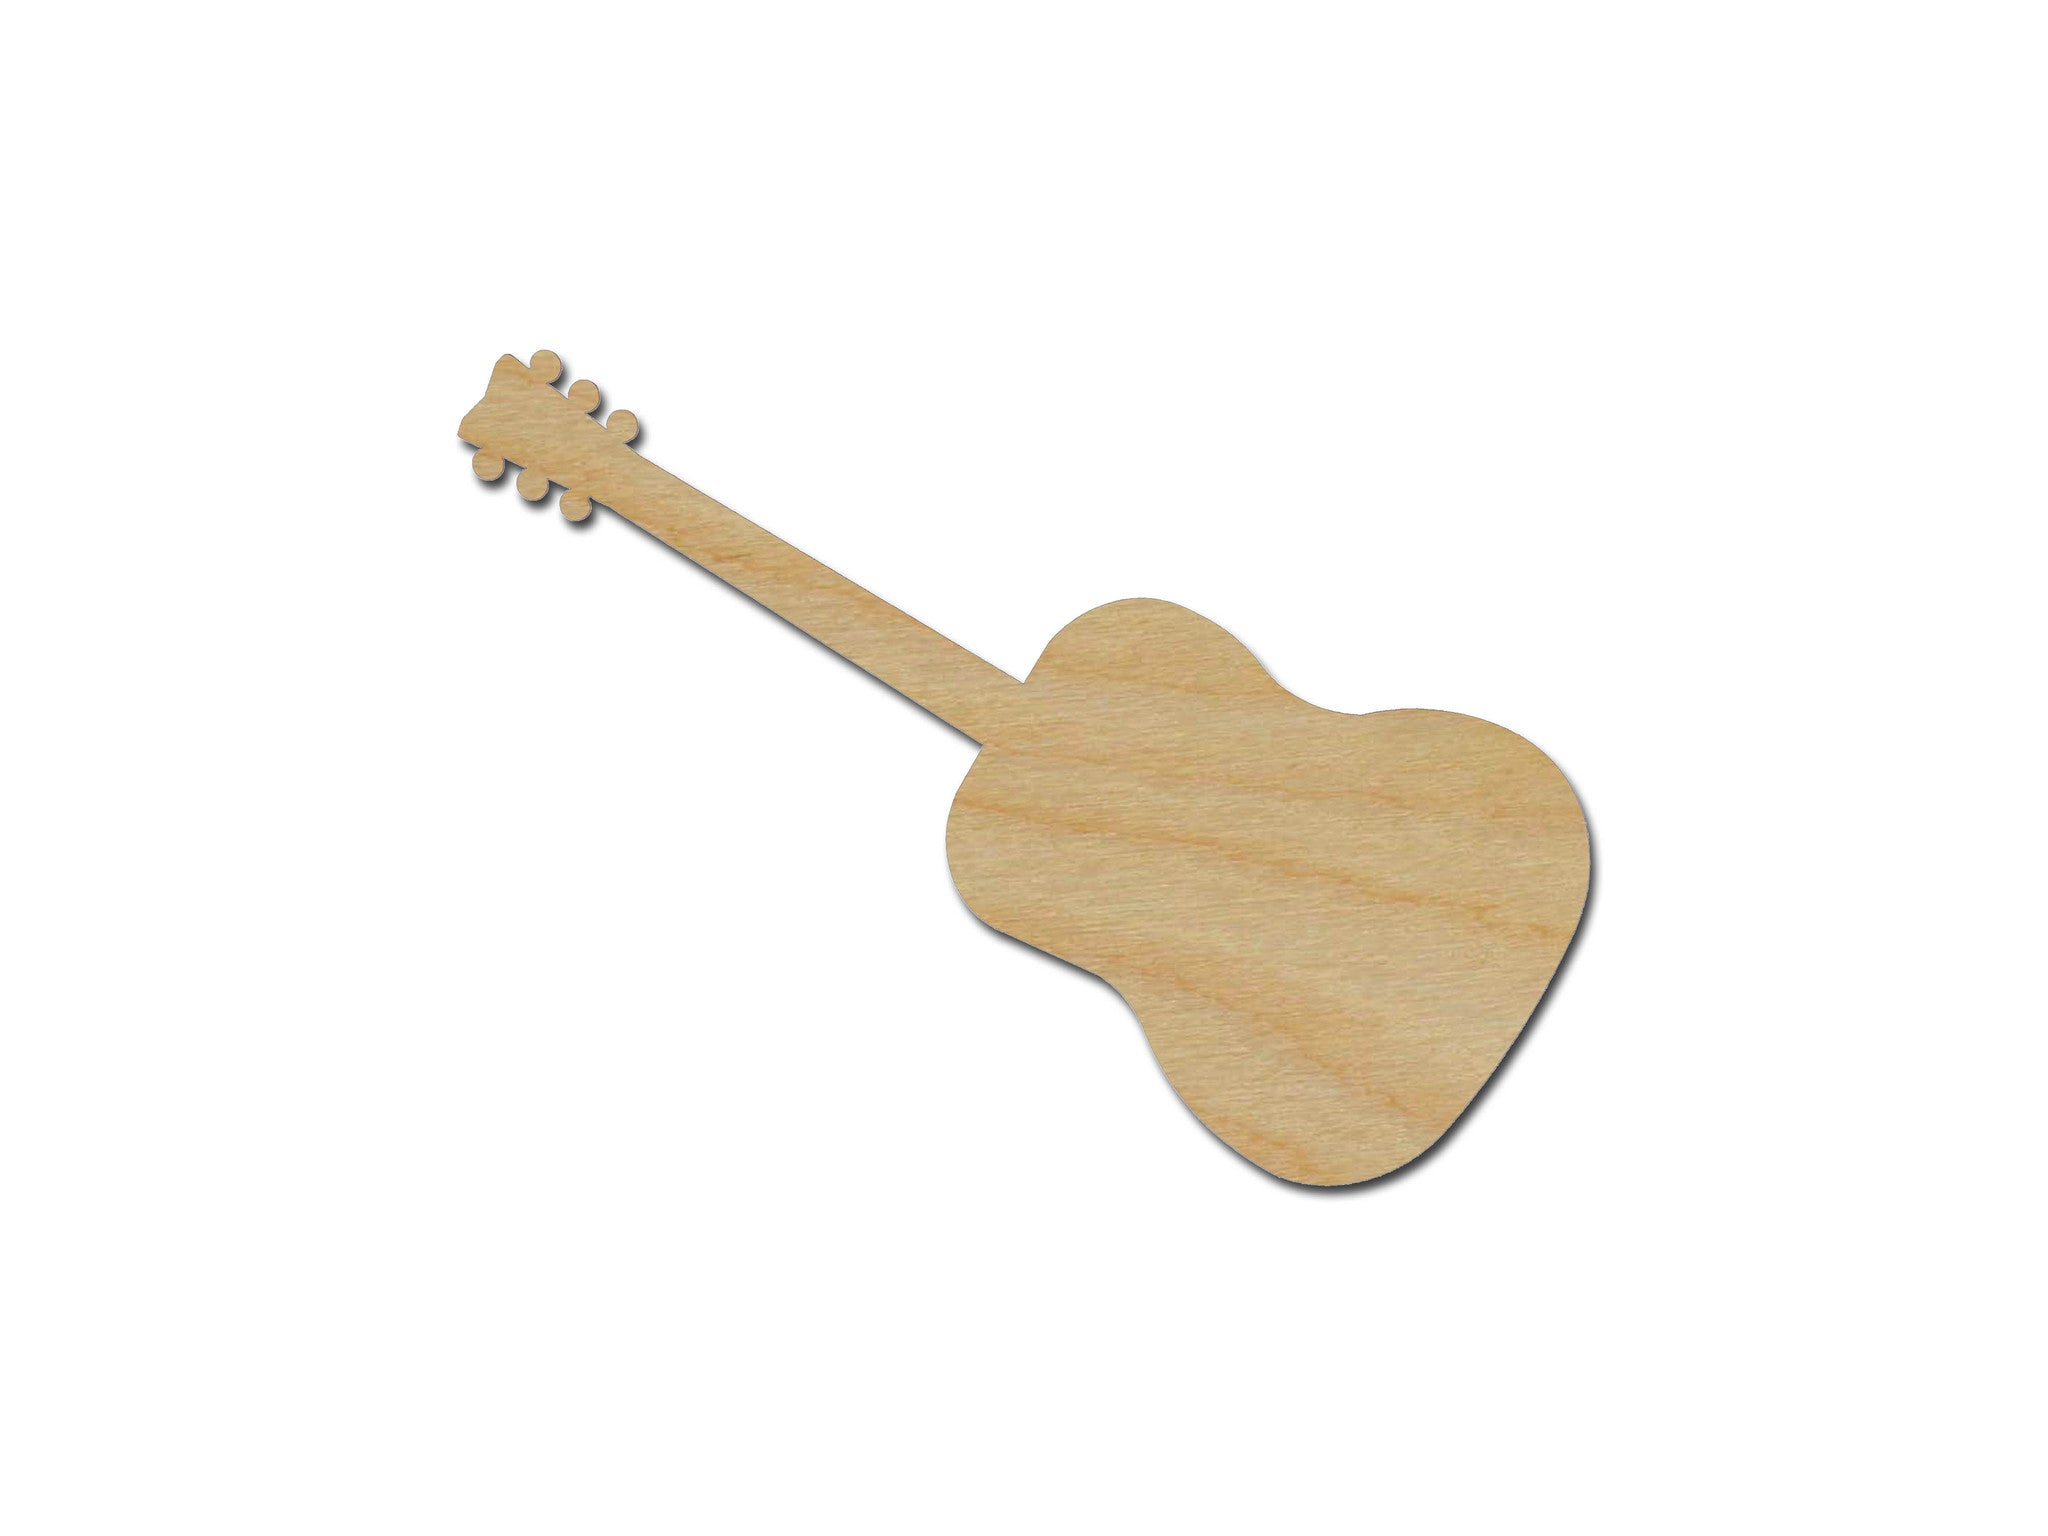 Acoustic Guitar Shape Unfinished Wood Cutout Variety of Sizes